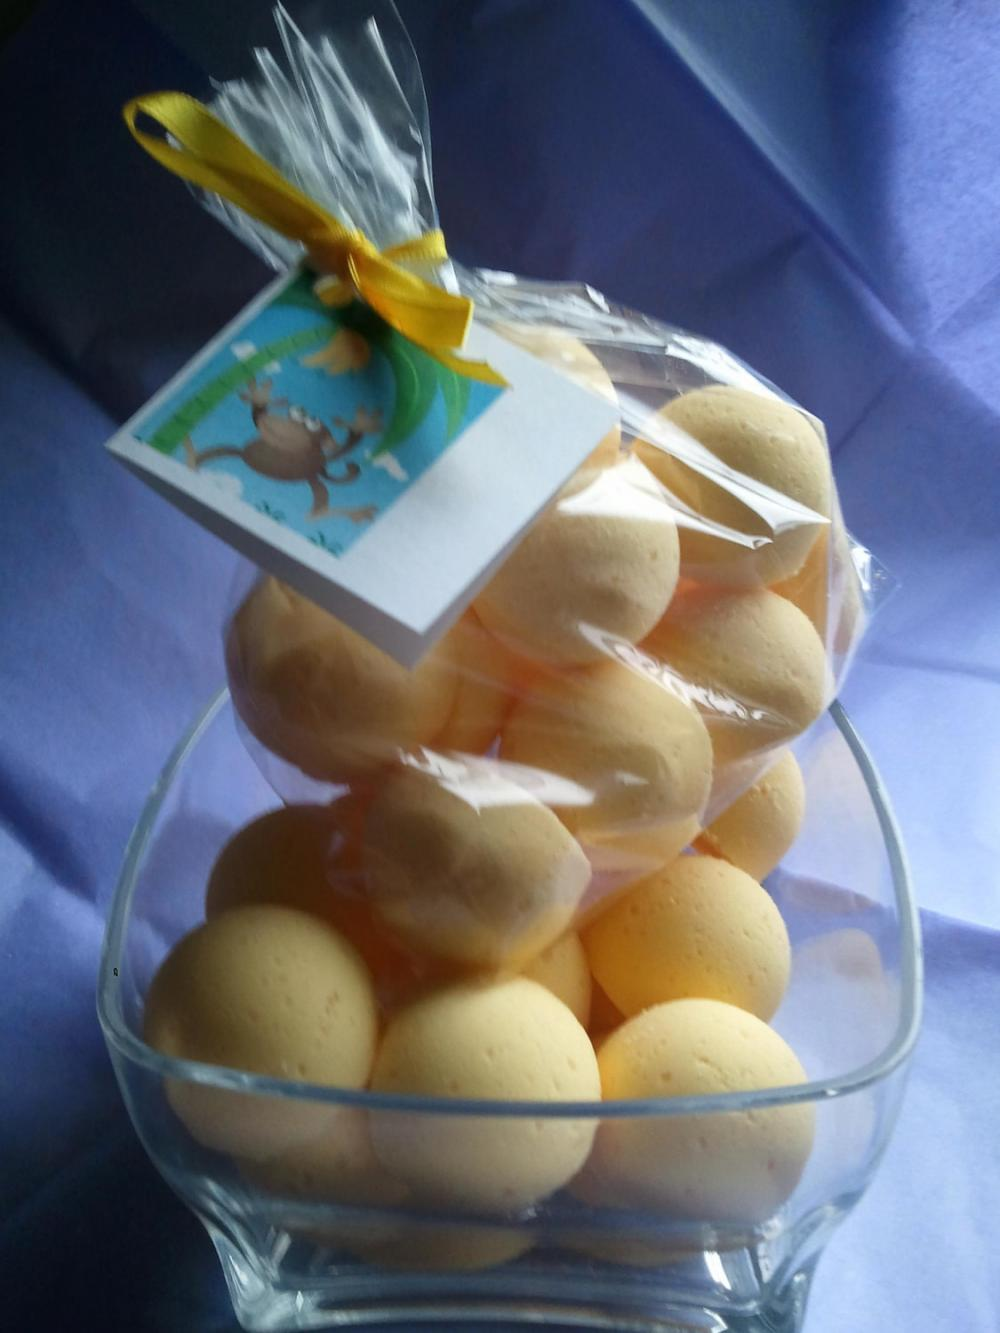 12 bath bombs 1 oz each (Monkey Farts) gift bag bath fizzies, great for kids...and adults too